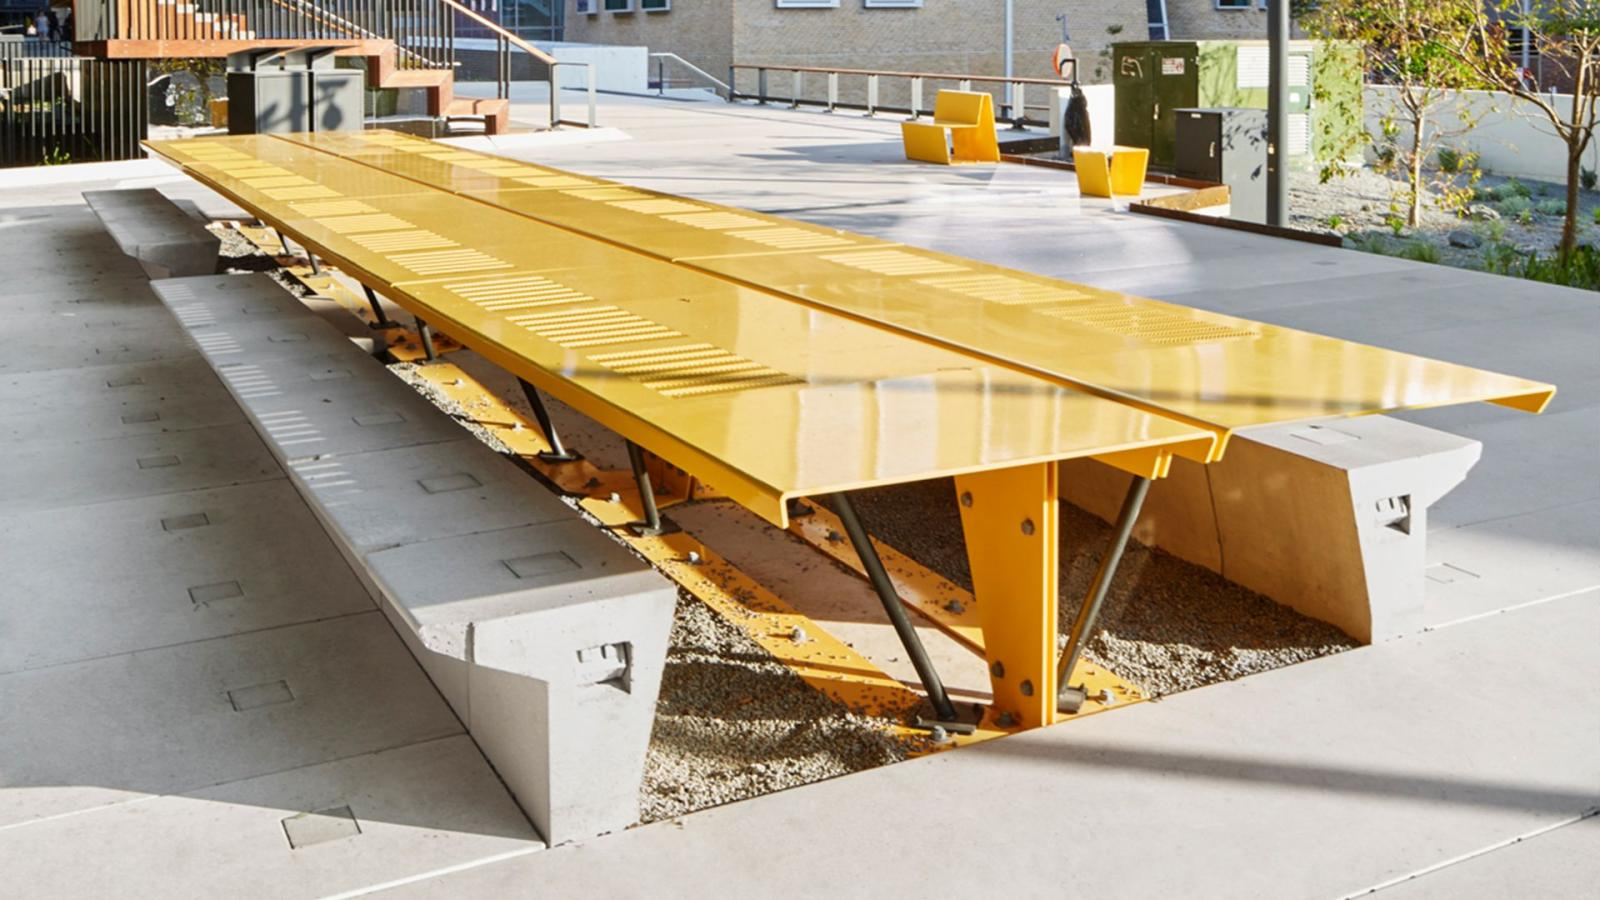 The Goods Line Sydney Designed By ASPECT Studios - Outdoor communal table